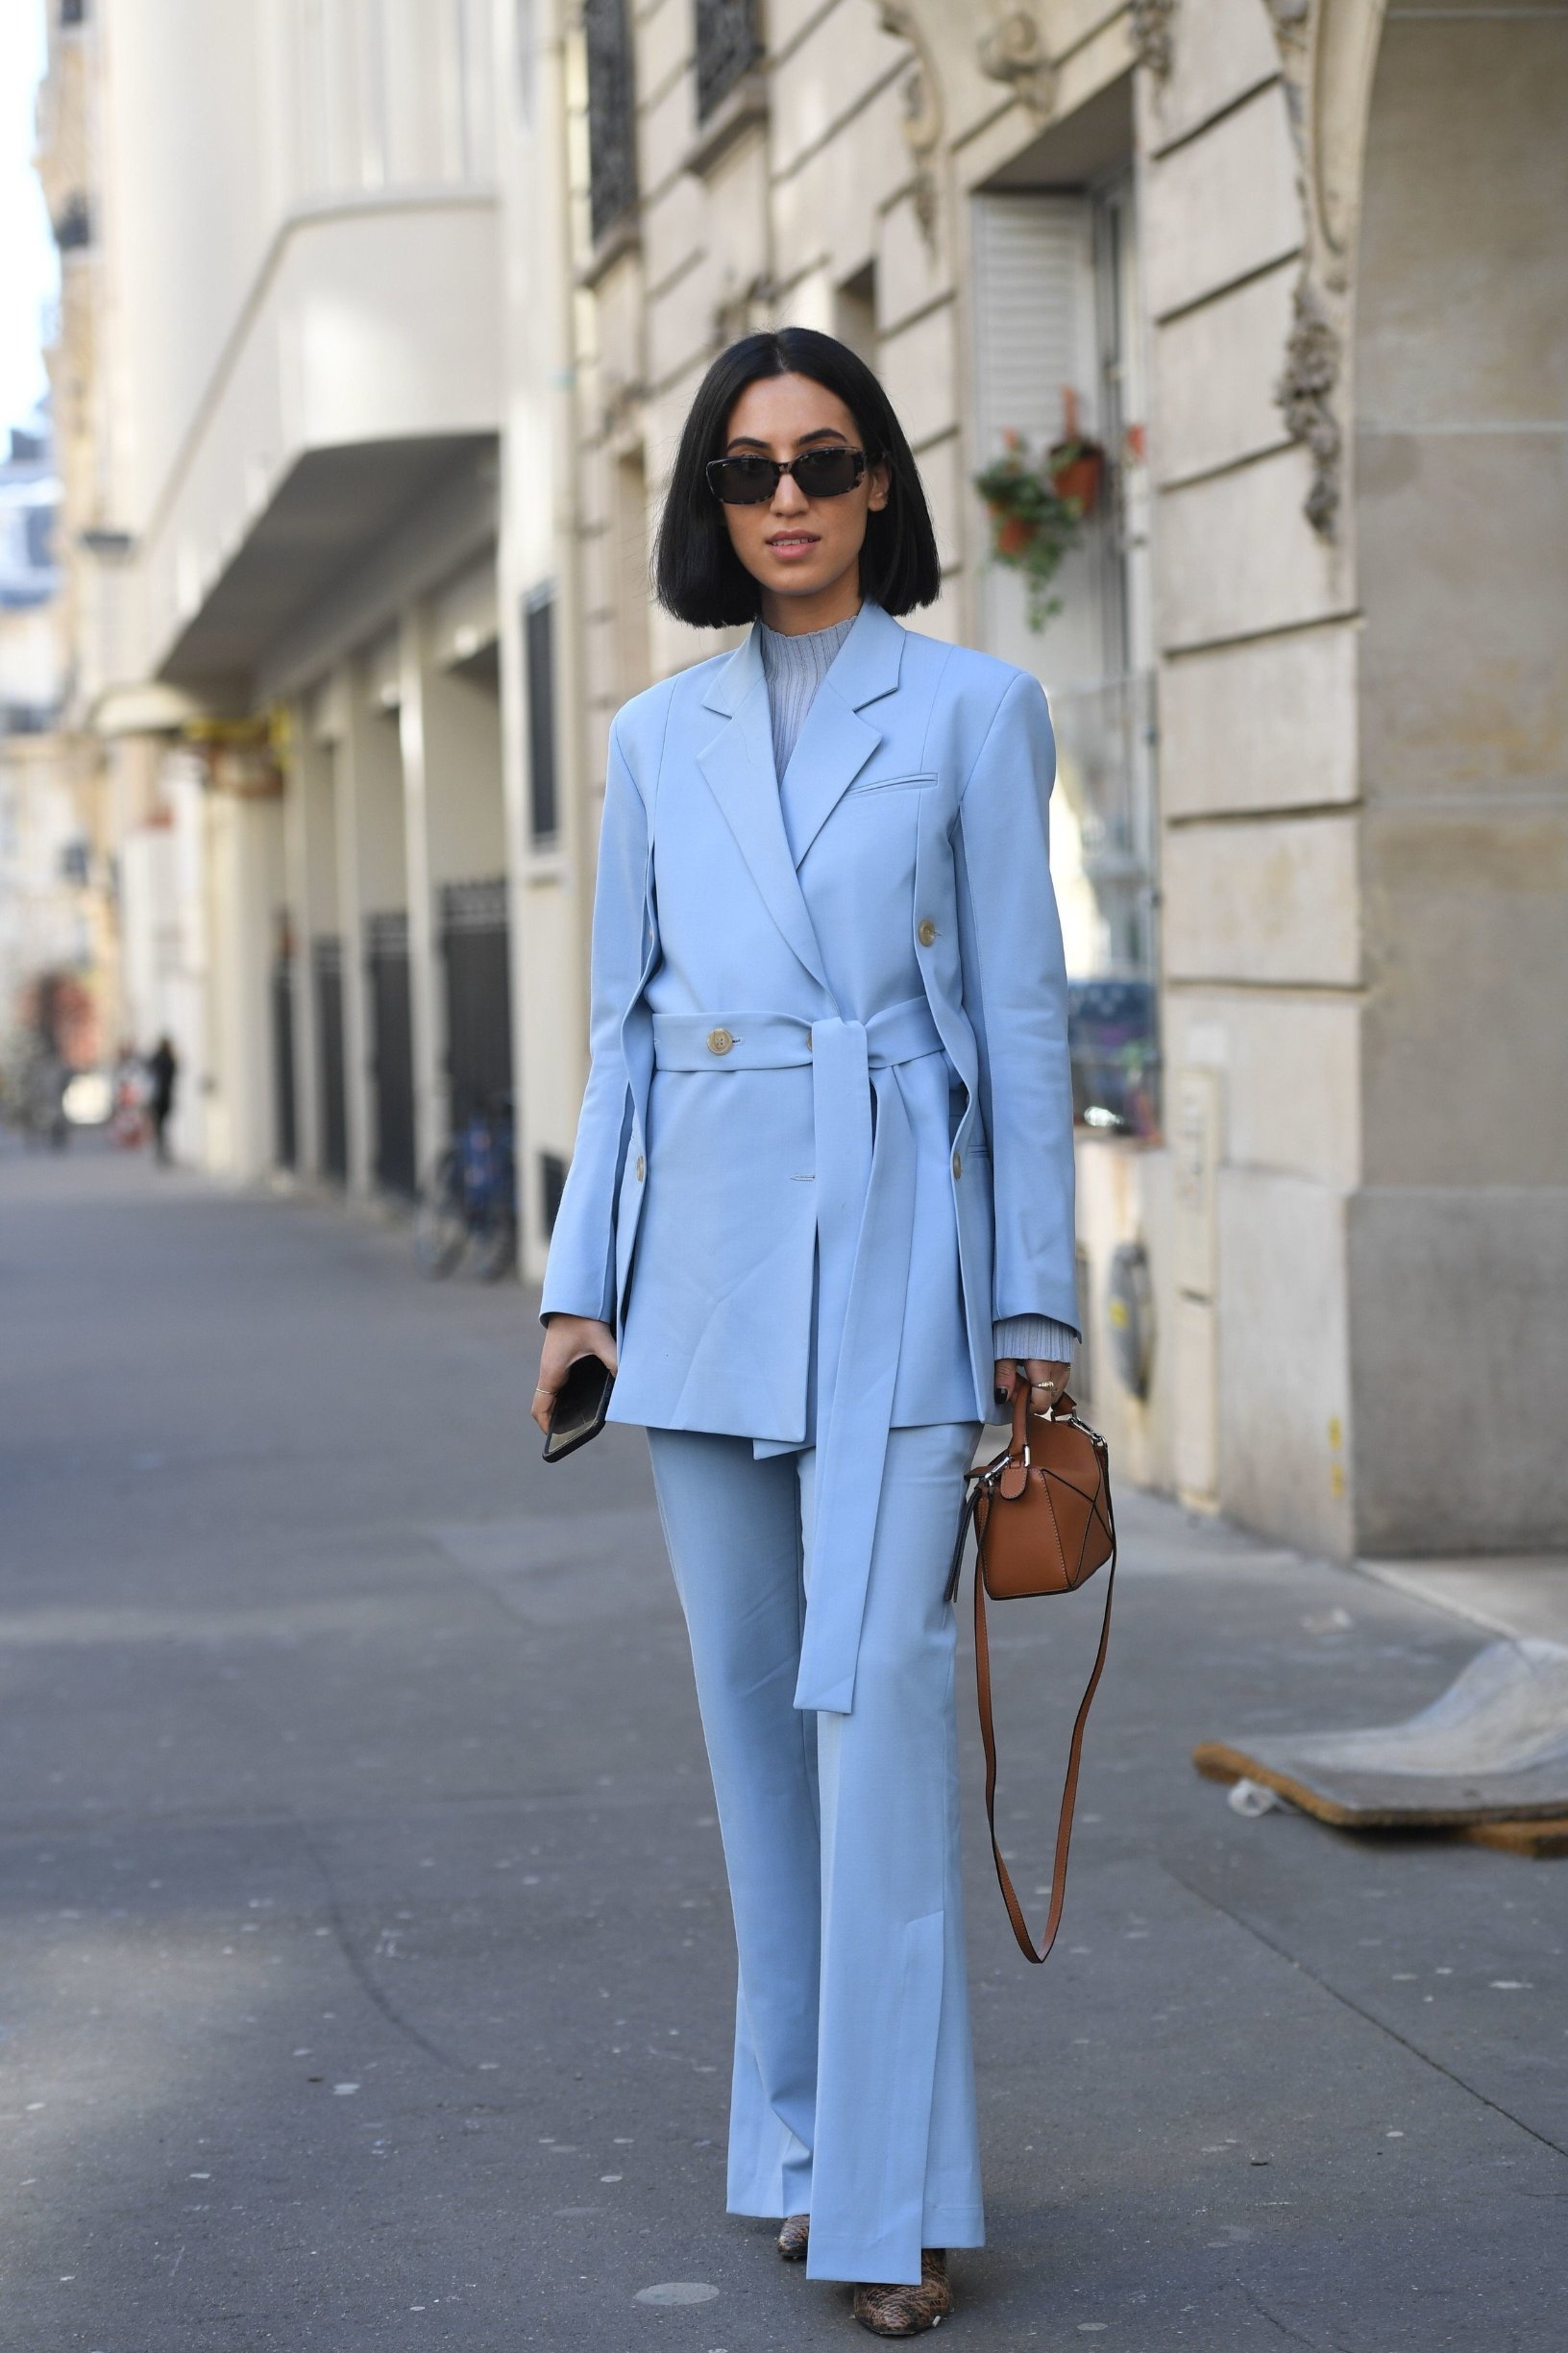 Street Style Street Style, Fall Winter 2019, Paris Fashion Week, France - 26 Feb 2019, Image: 416174090, License: Rights-managed, Restrictions: , Model Release: no, Credit line: Profimedia, TEMP Rex Features